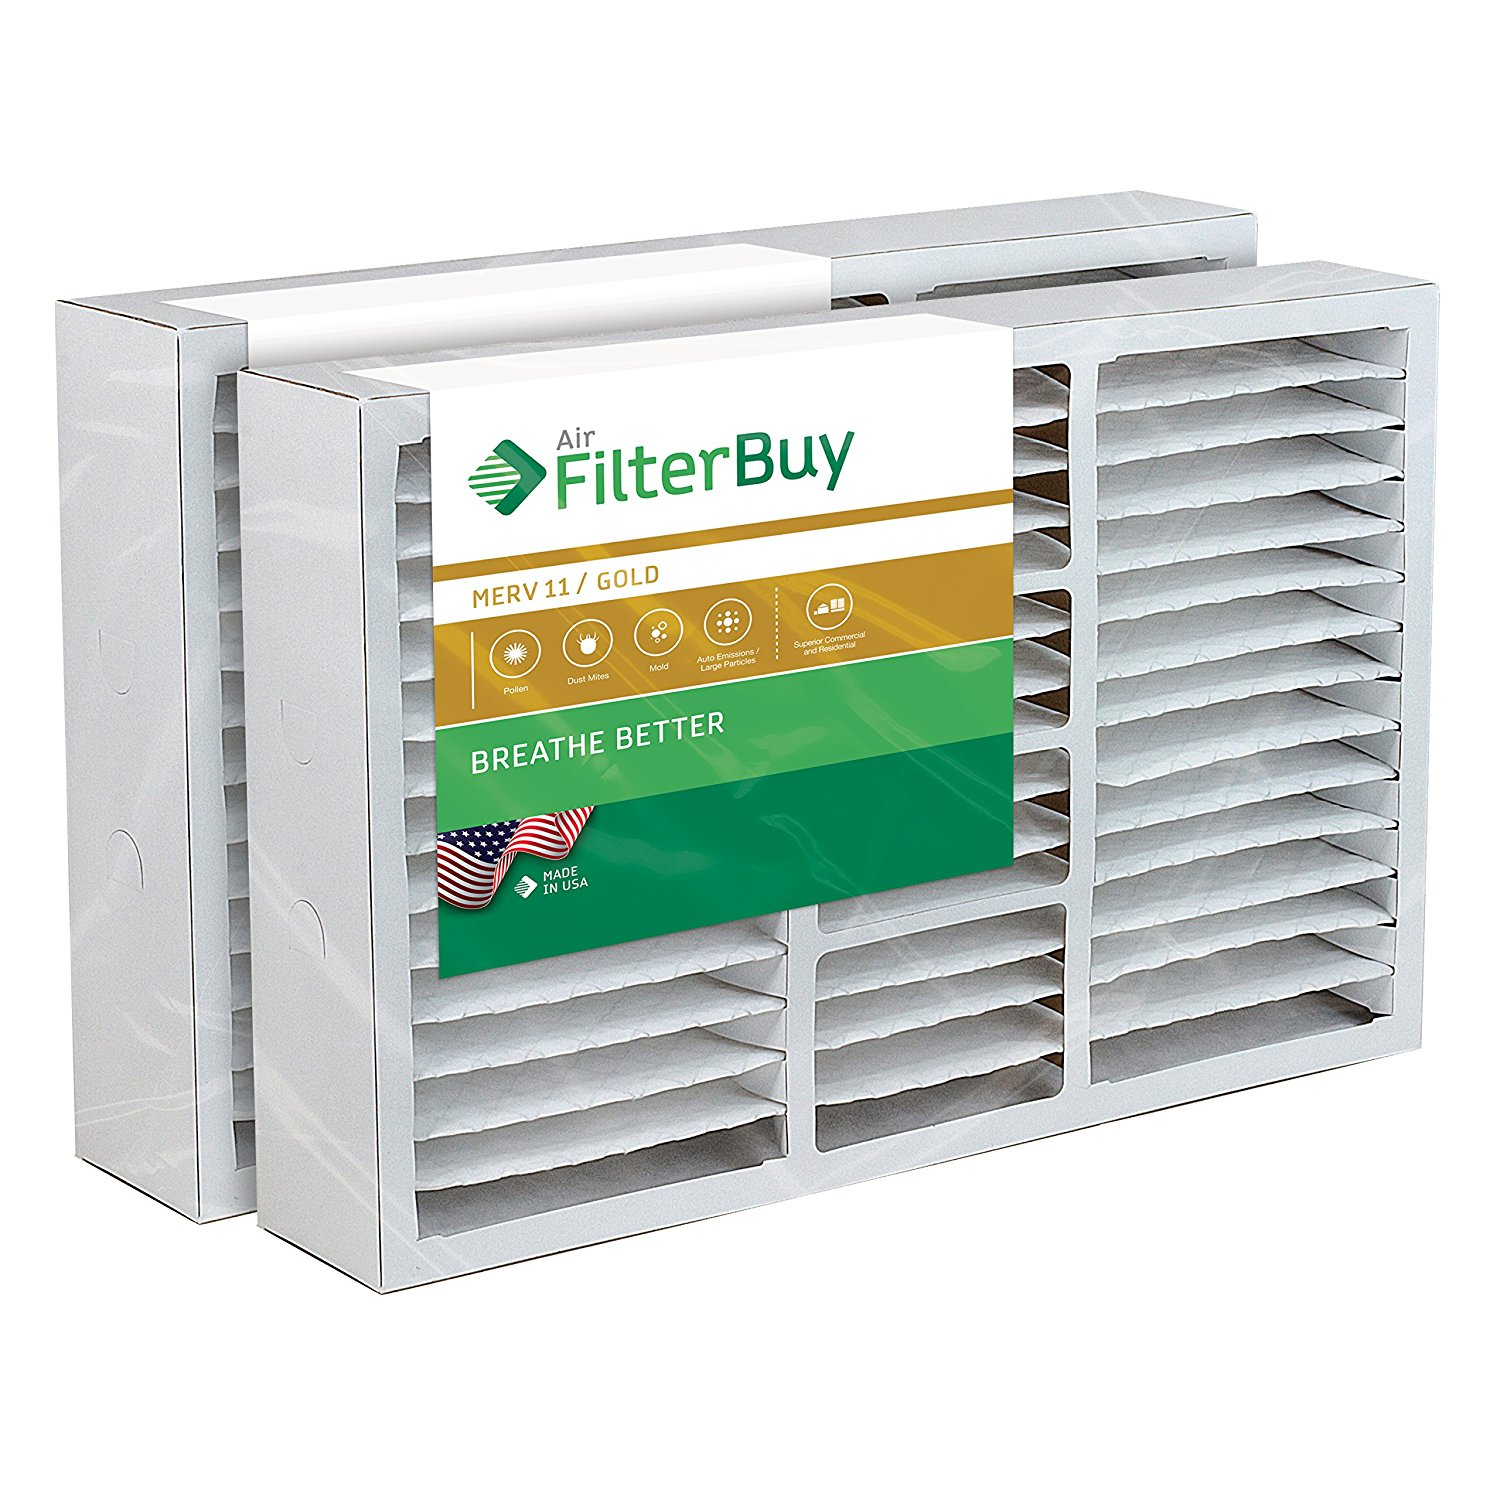 FilterBuy 16x25x5 Amana Replacement AC Furnace Air Filters - AFB Gold MERV 11 - Pack of 2 Filters. Designed to replace FS1625, M1-1056, MU1625, 9183950.